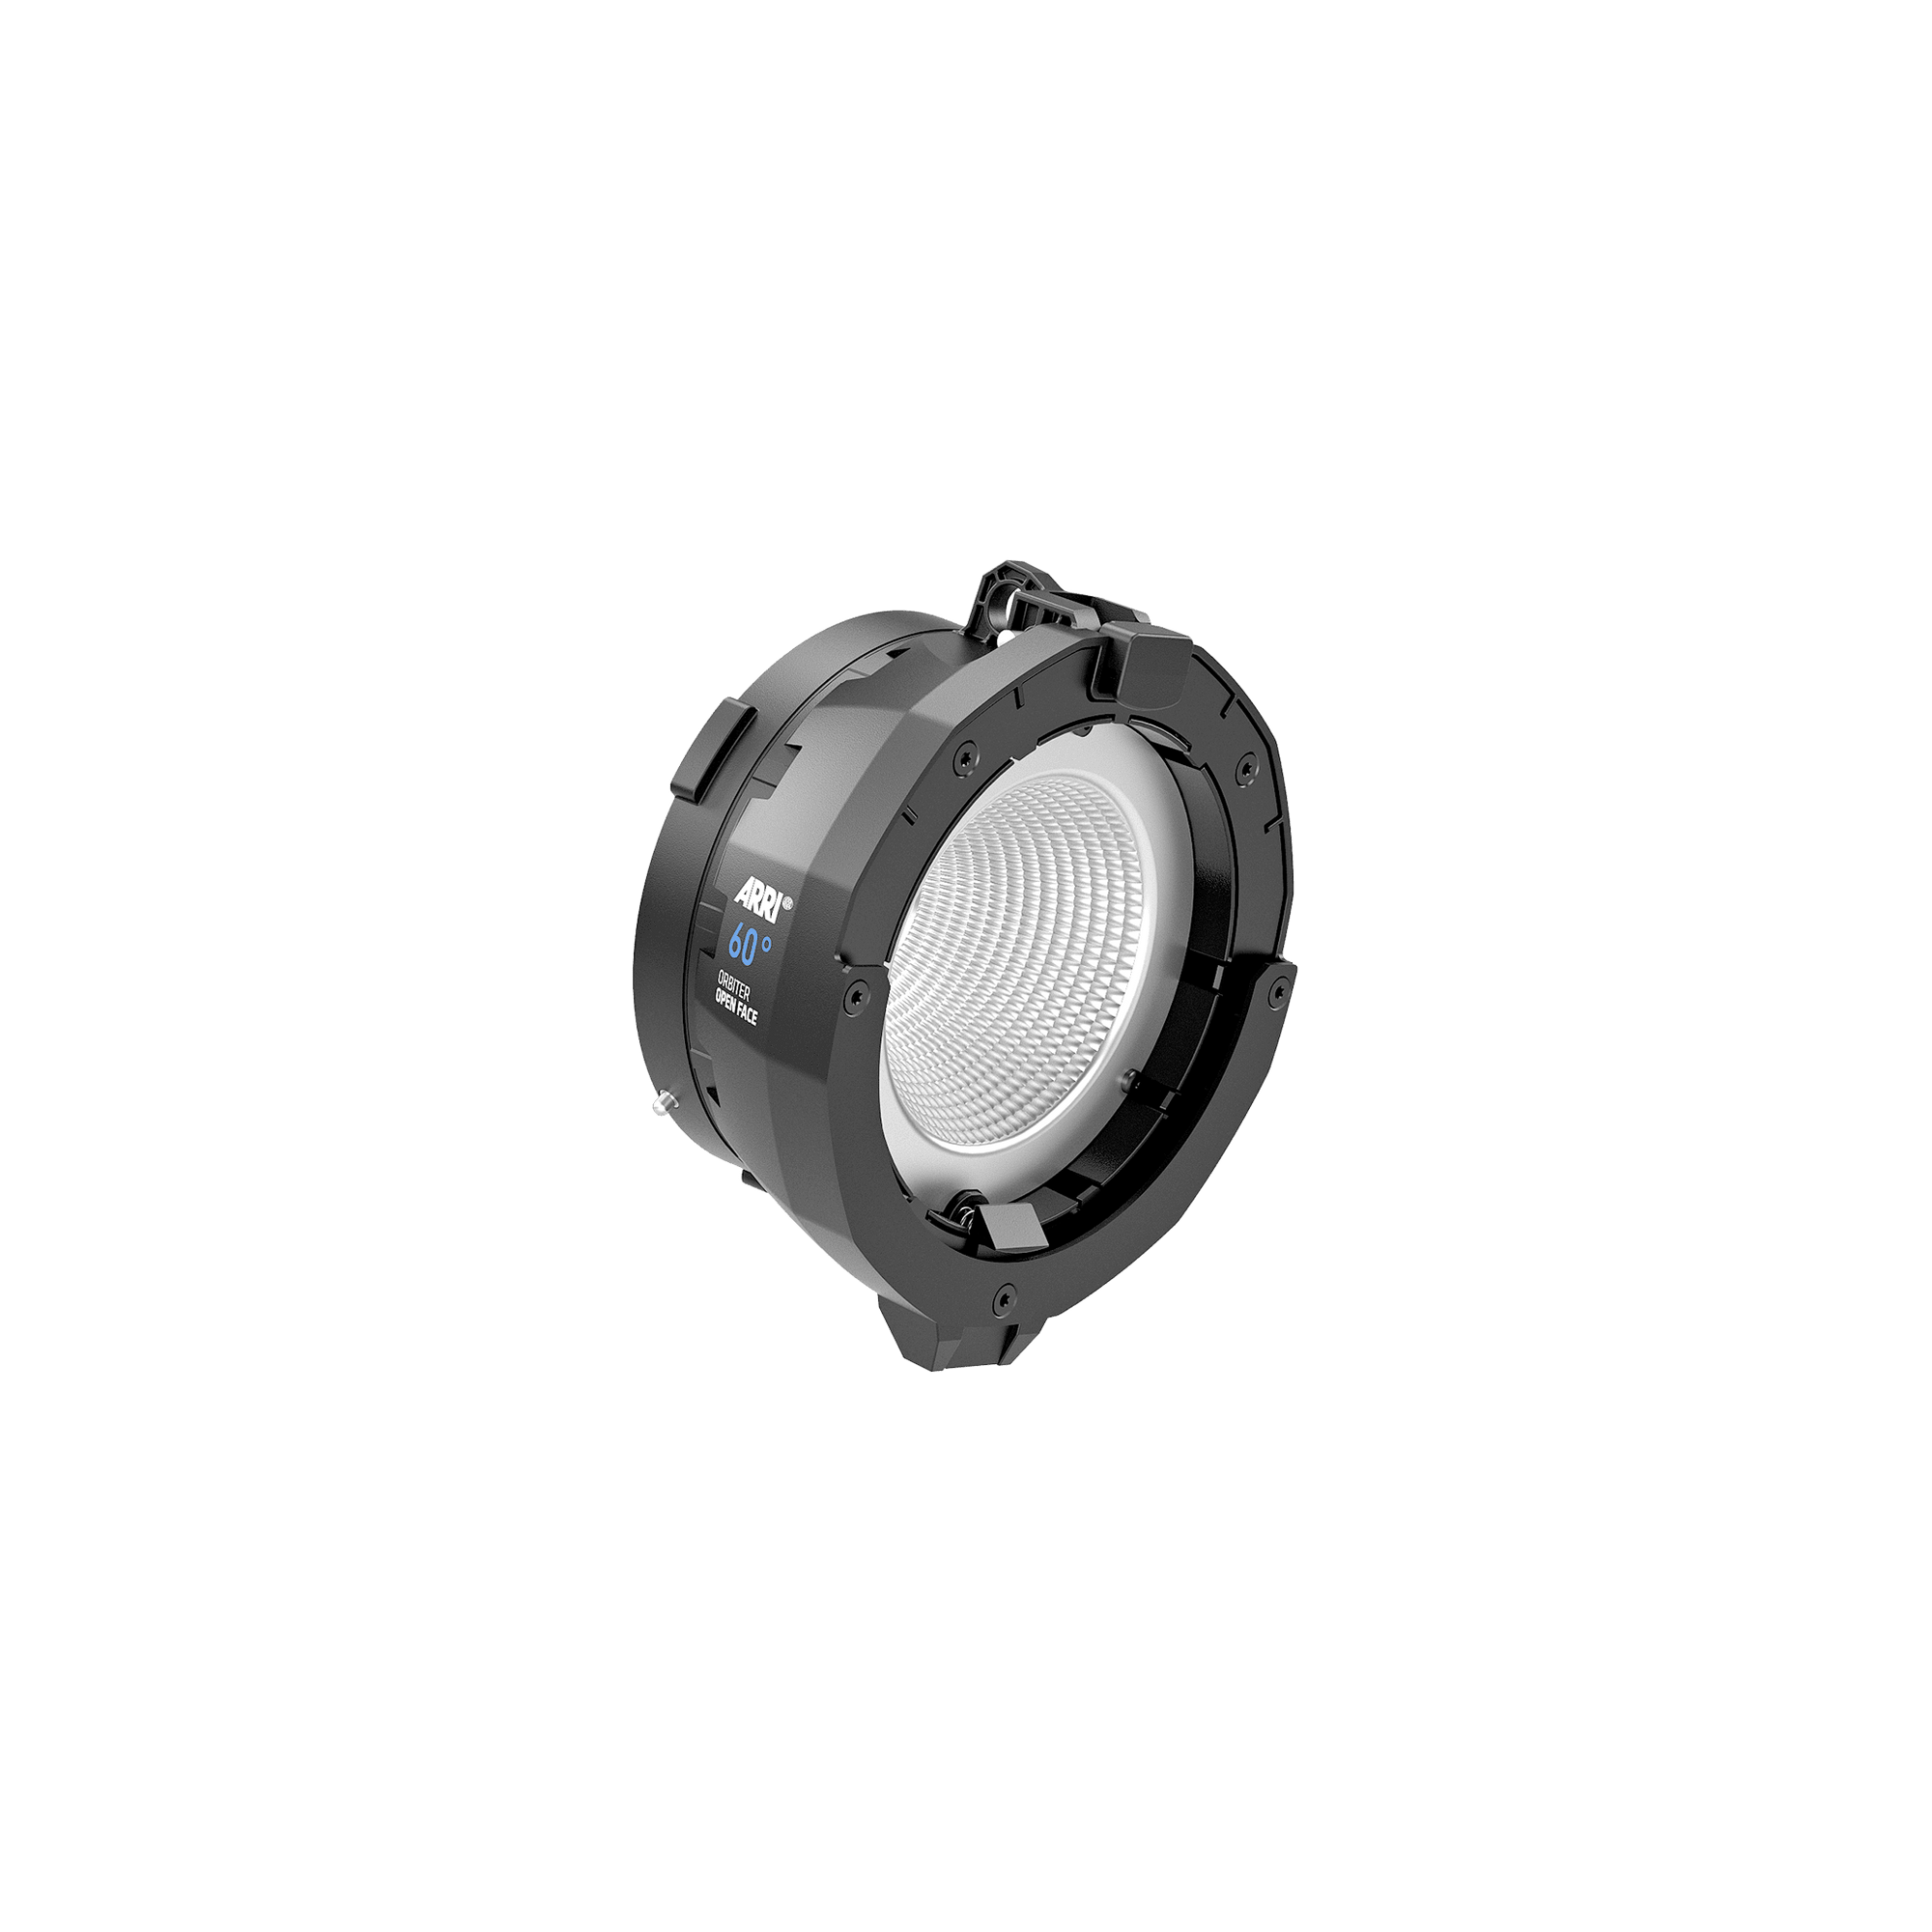 ARRI Orbiter Open Face Optic 60 Degree